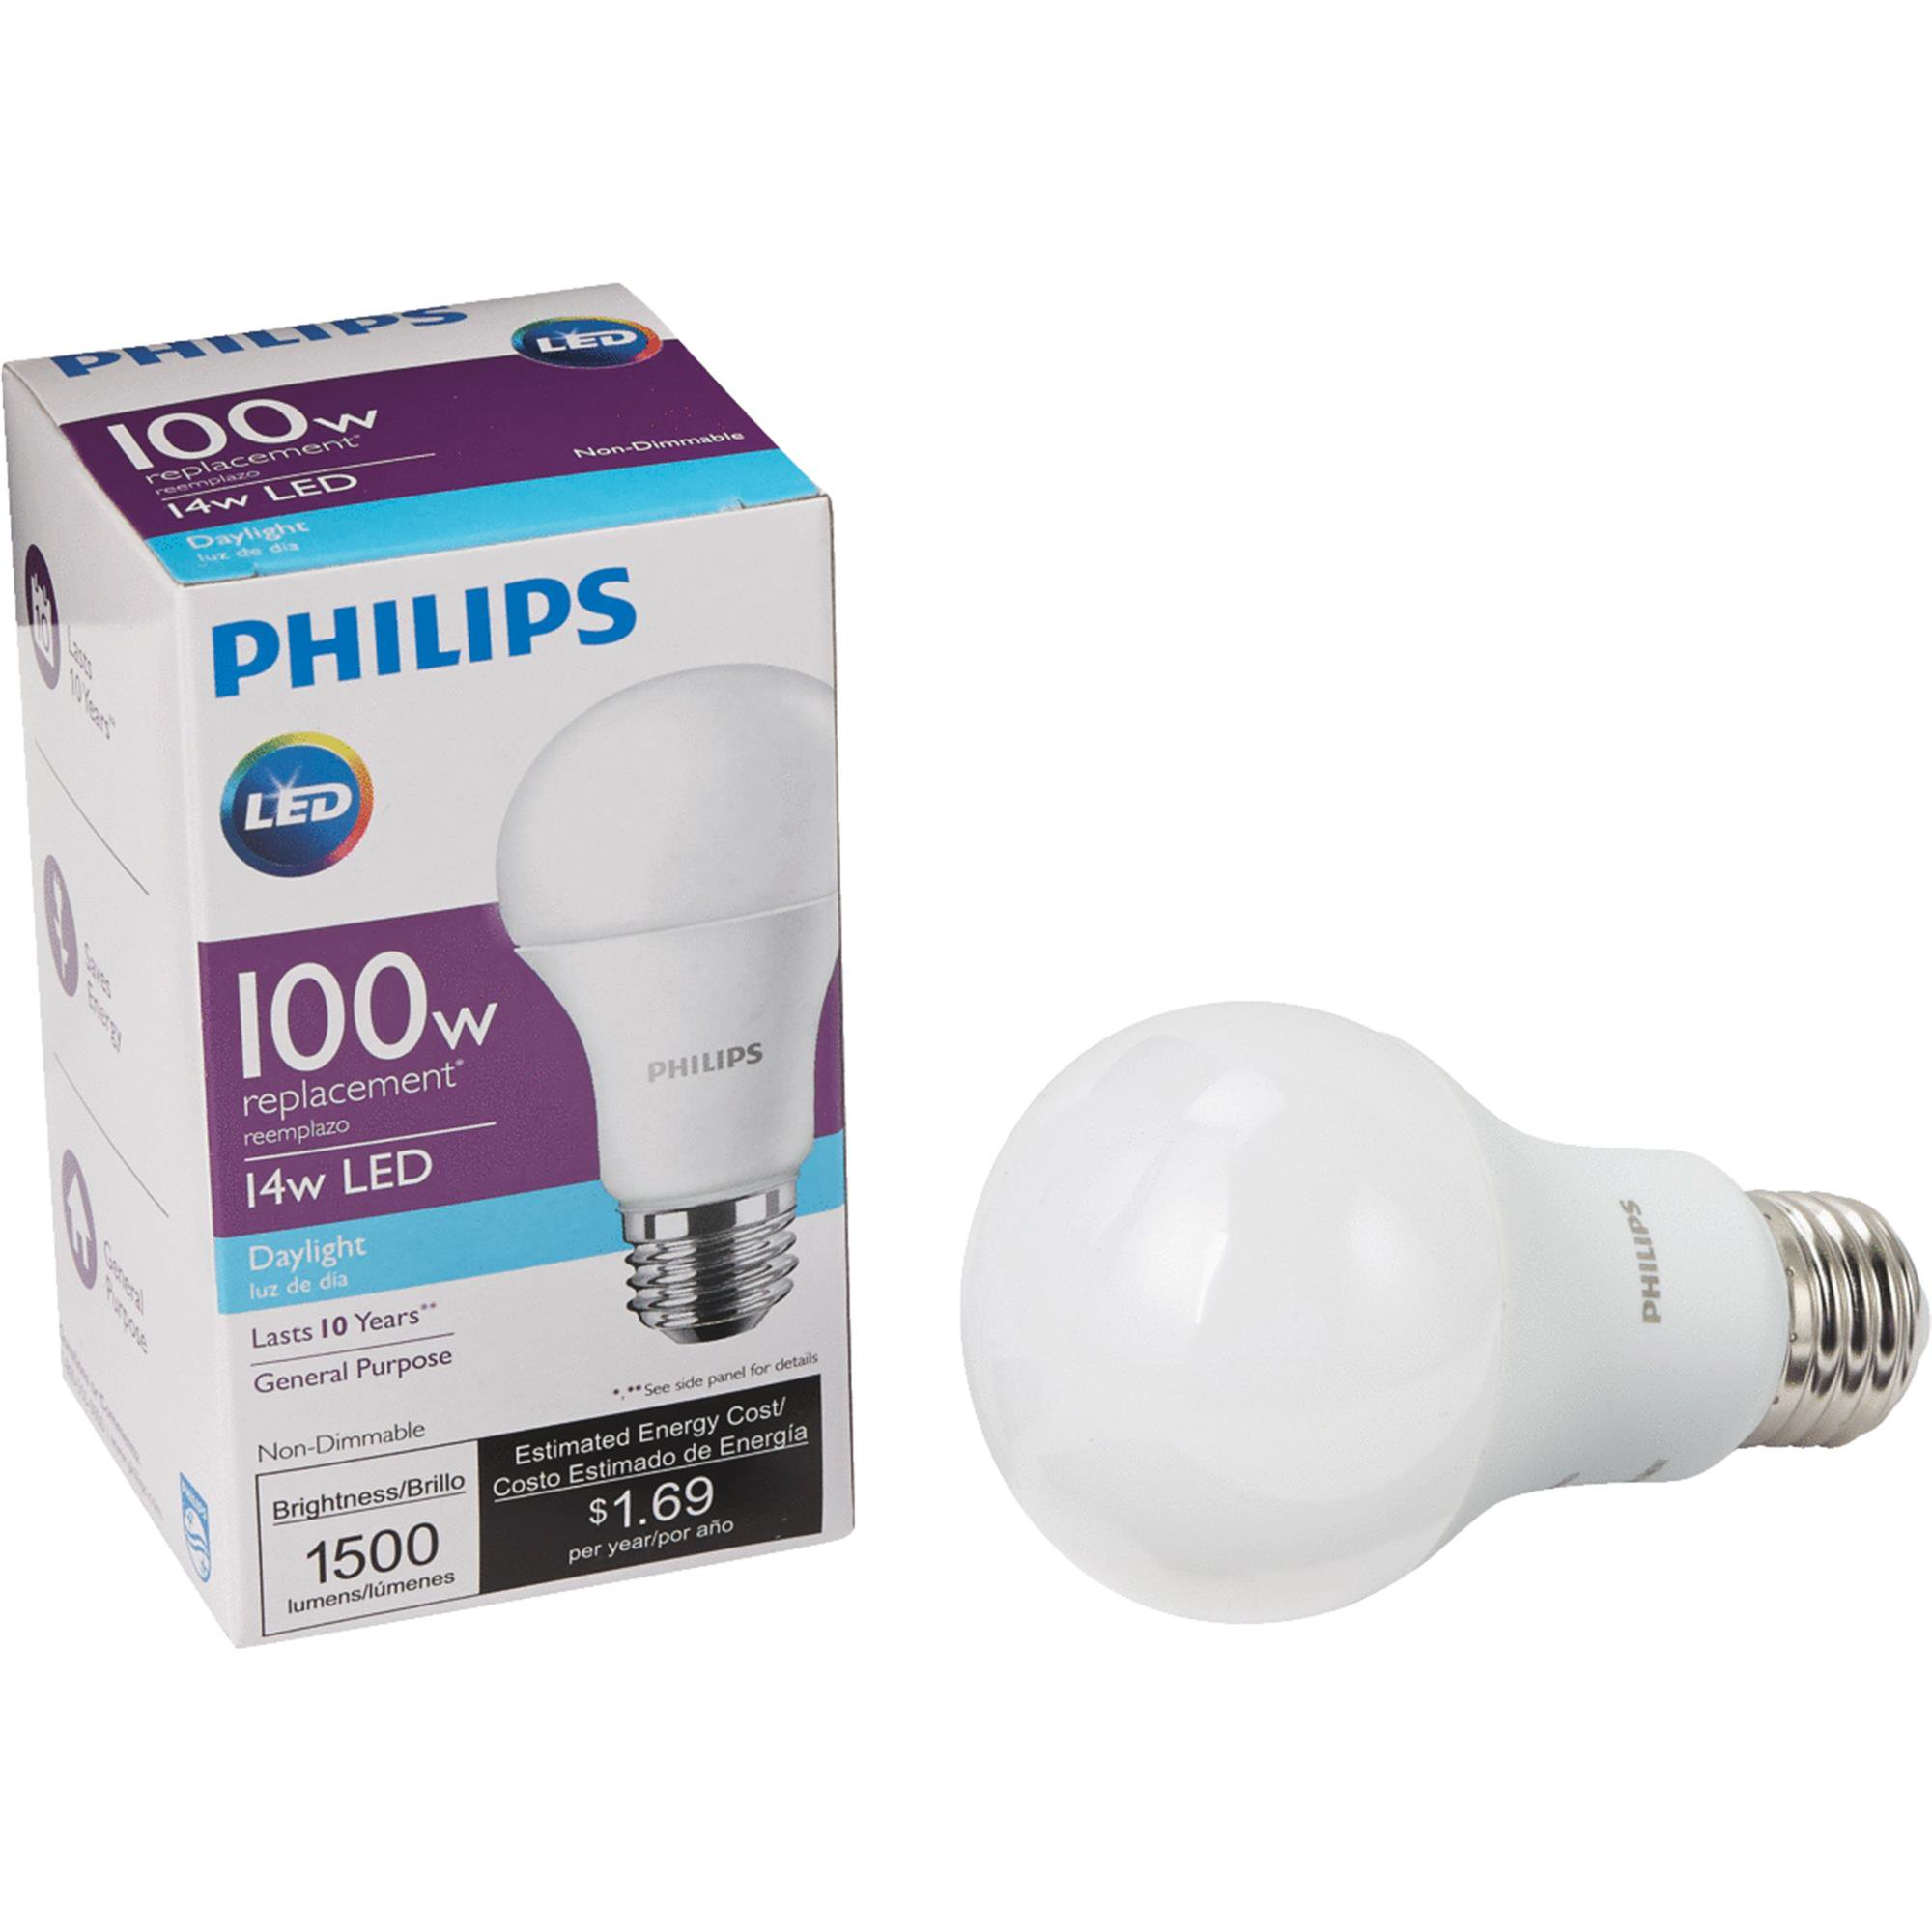 Philips A19 Medium LED Light Bulb